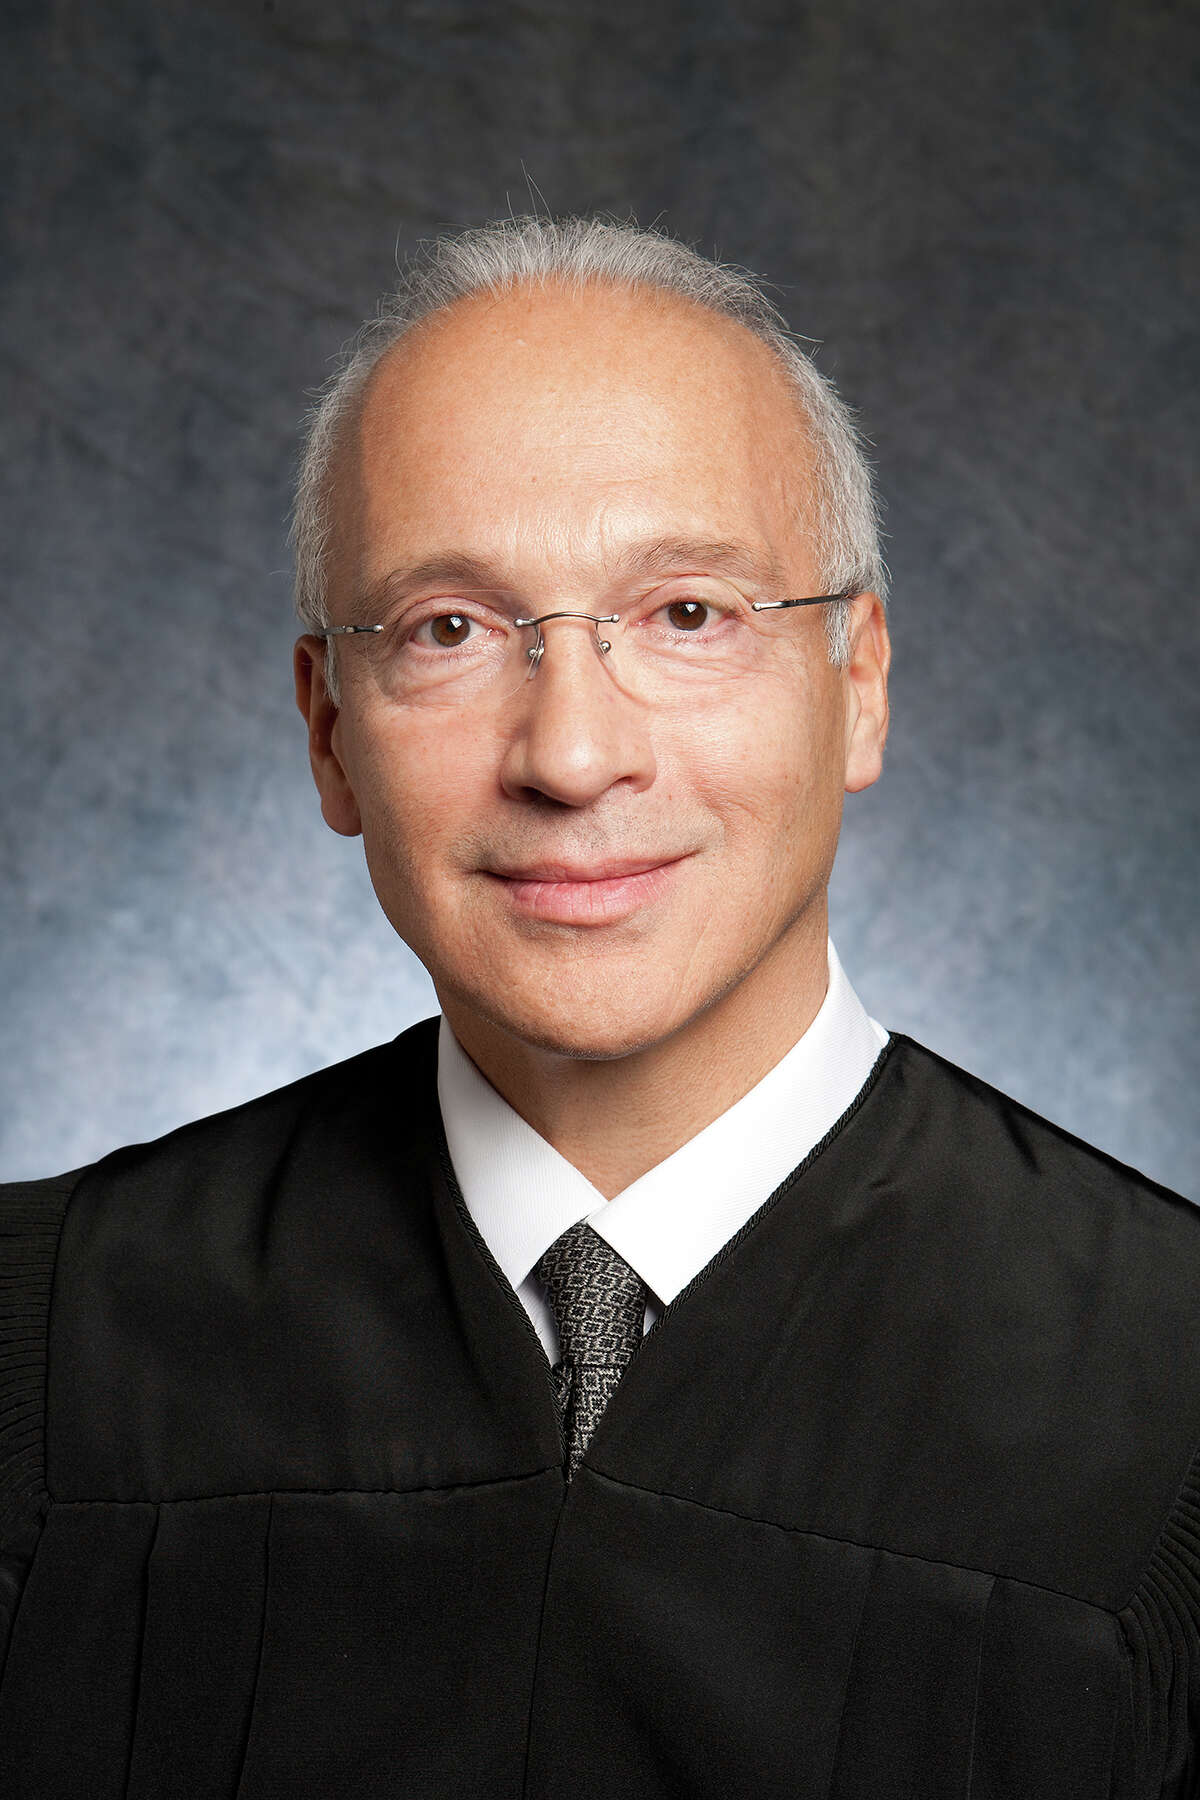 Judge Gonzalo Curiel of the U.S. District Court for the Southern District of California. Curiel, whose handling of a lawsuit filed by former students of Donald Trump has drawn him into a political spotlight, once had to live in hiding after being threatened with assassination for his work prosecuting Mexican drug cartel members. (U.S. District Court for the Southern DIstrict of California via The New York Times)